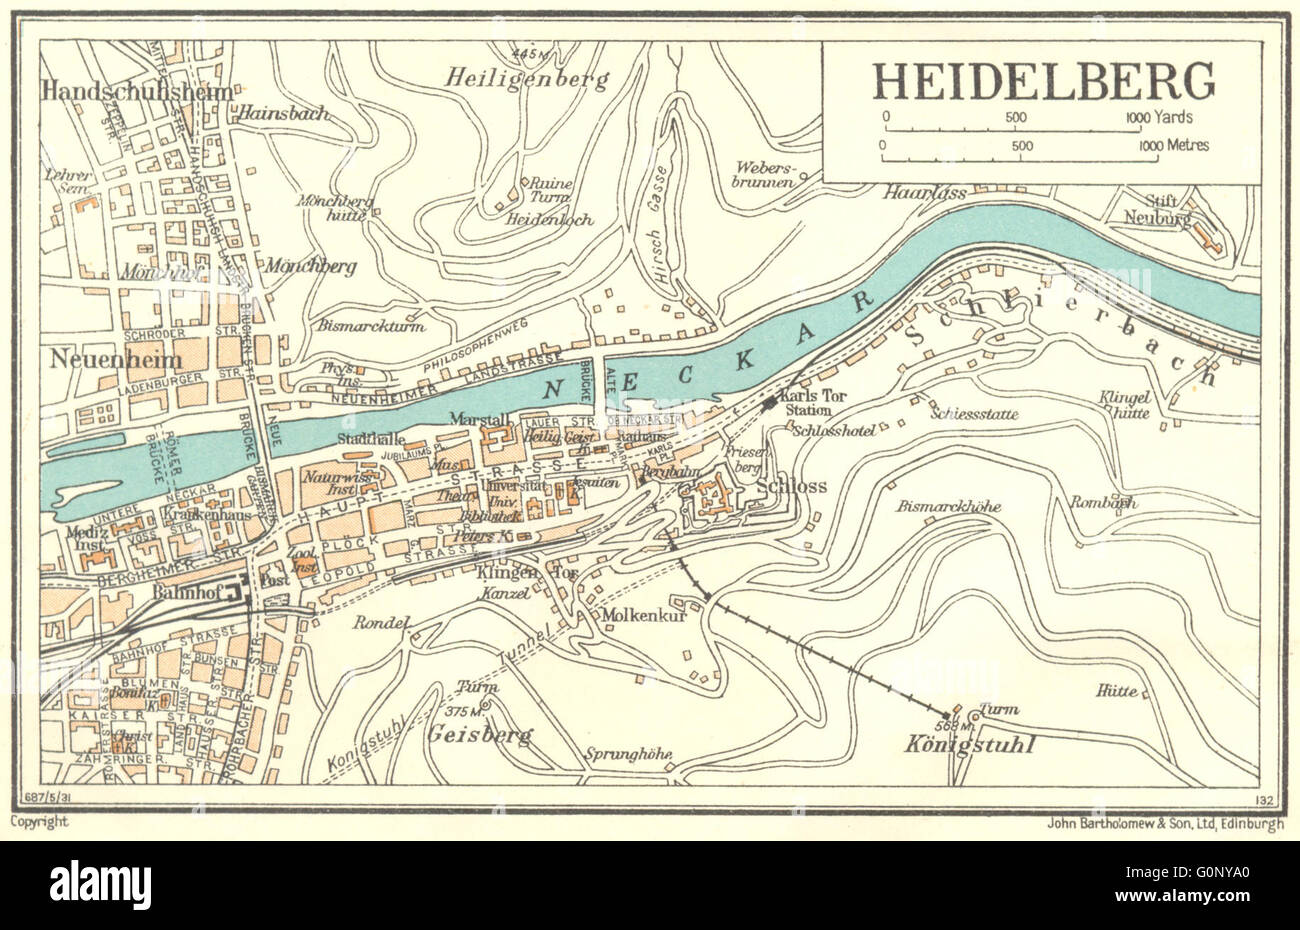 germany heidelberg 1931 vintage map